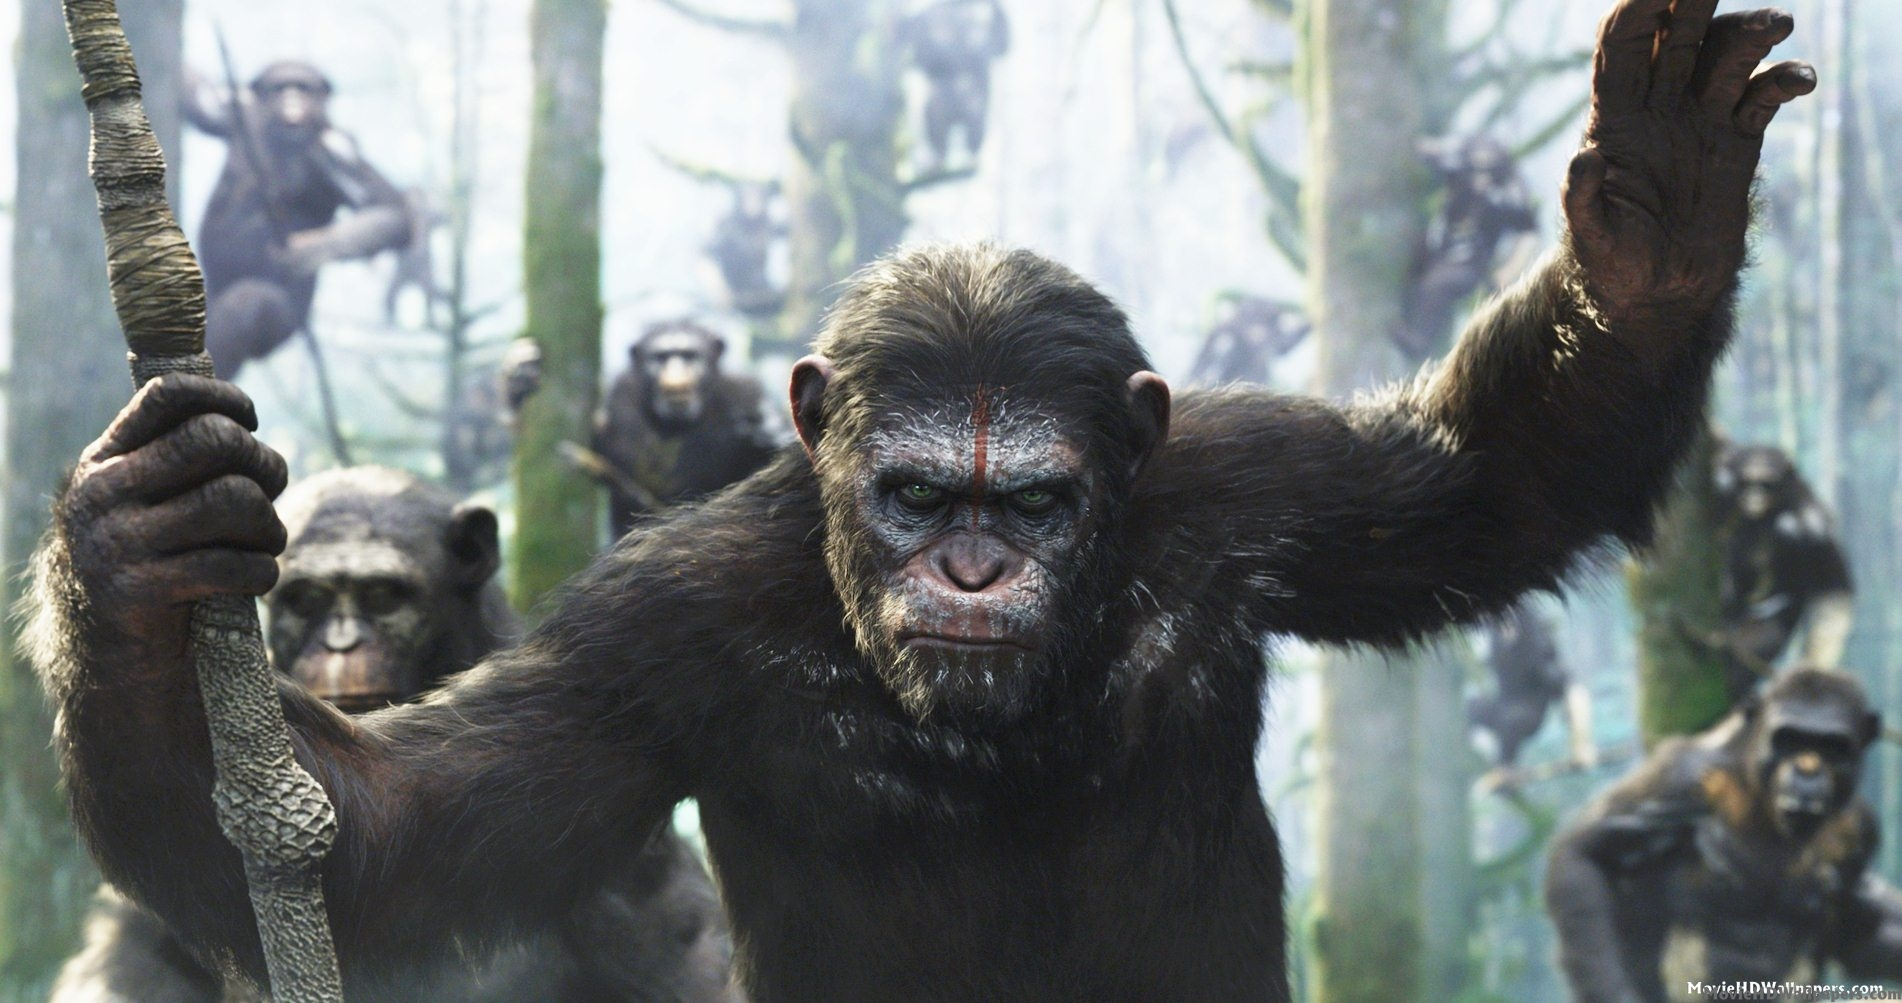 Dawn of the planet of the apes movie review bkonthescene dawn of the planet of the apes movie review publicscrutiny Gallery